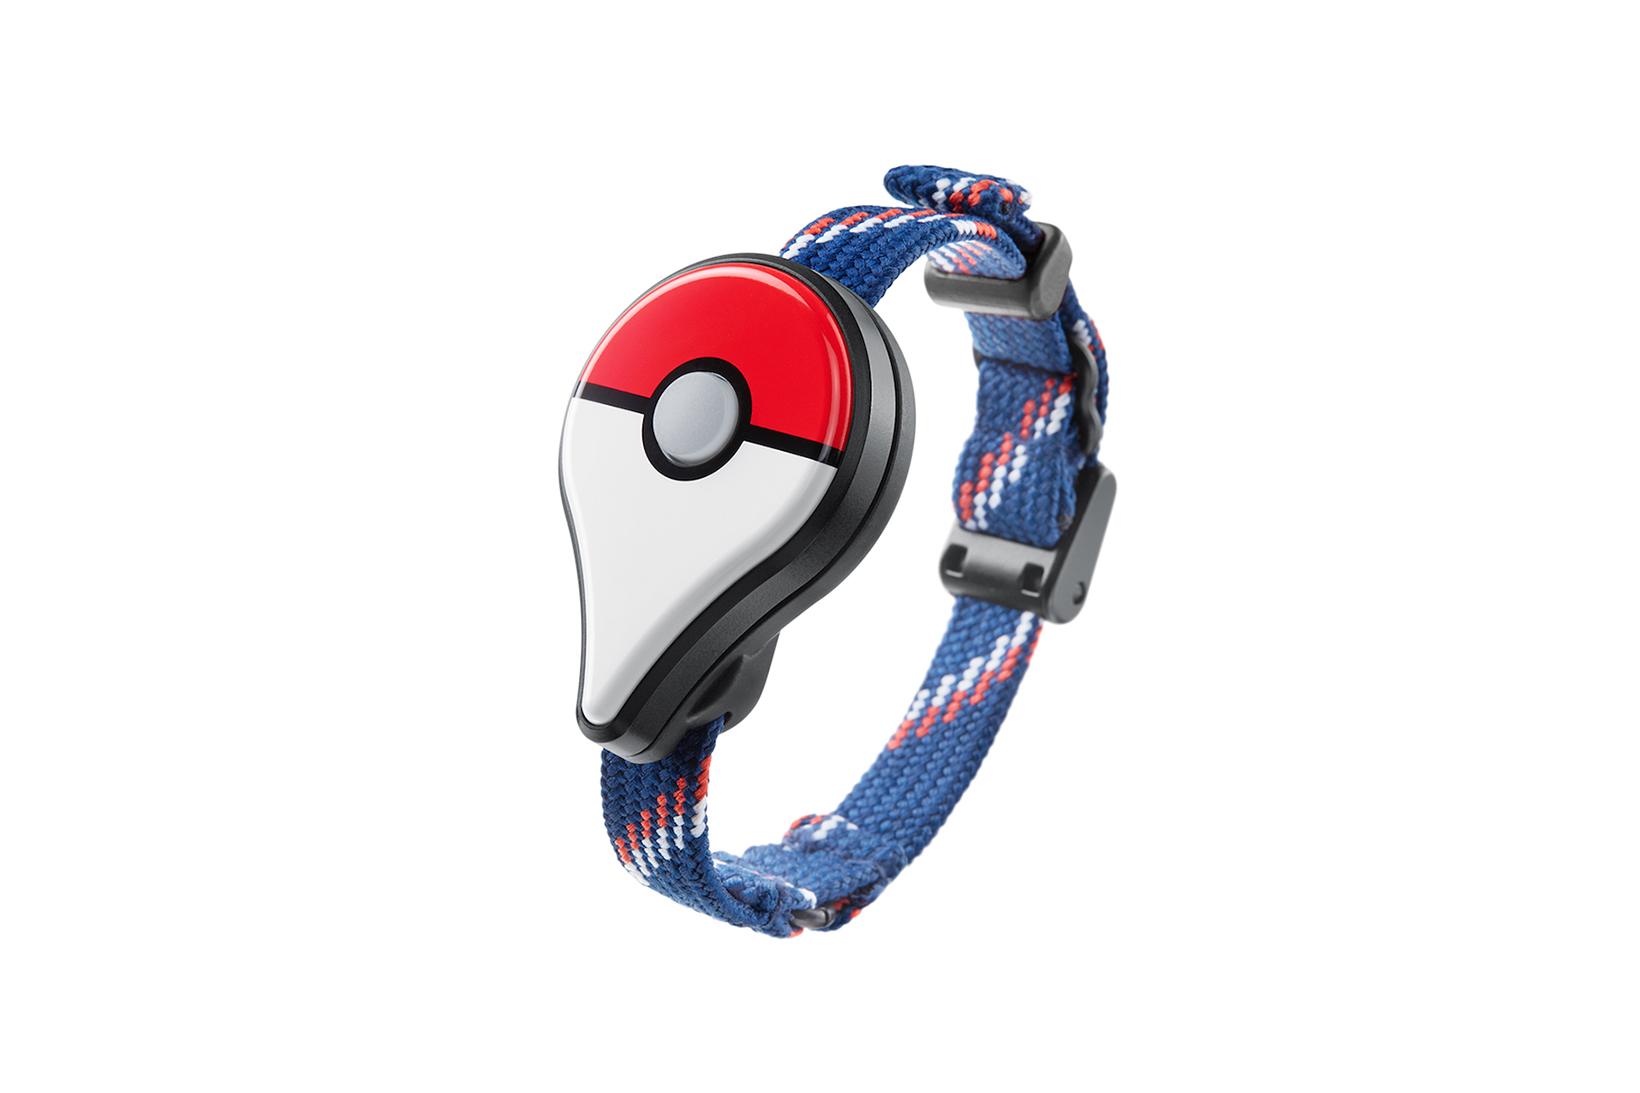 The 'Pokémon Go' Plus Wearable Finally Launches Next Week